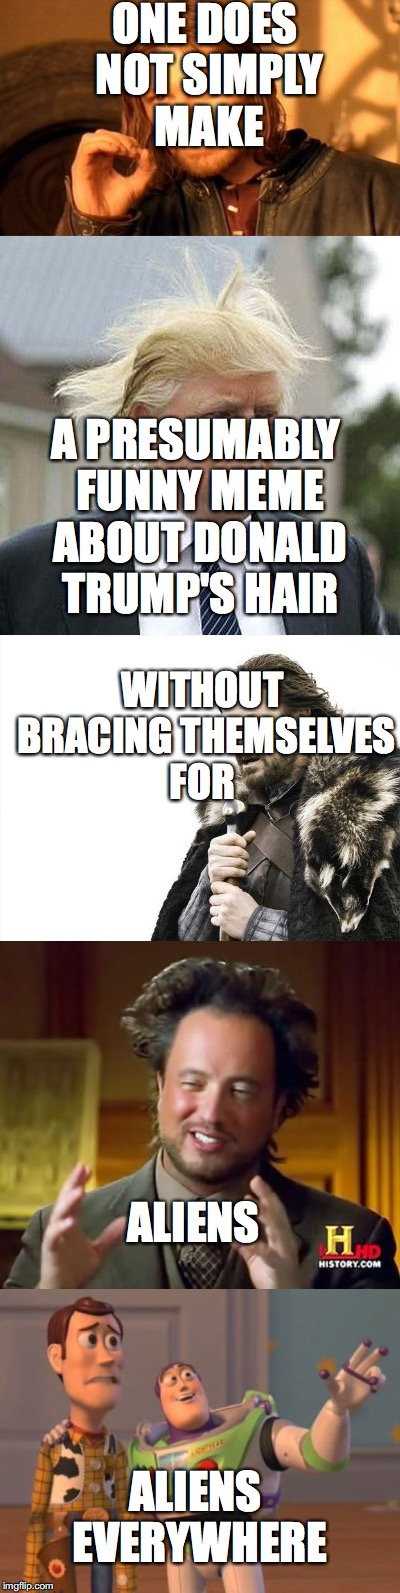 Behold the Indominus Meme! | ONE DOES NOT SIMPLY MAKE A PRESUMABLY FUNNY MEME ABOUT DONALD TRUMP'S HAIR WITHOUT BRACING THEMSELVES FOR ALIENS ALIENS EVERYWHERE | image tagged in one does not simply,donald trump,mashup,brace yourselves x is coming,ancient aliens | made w/ Imgflip meme maker